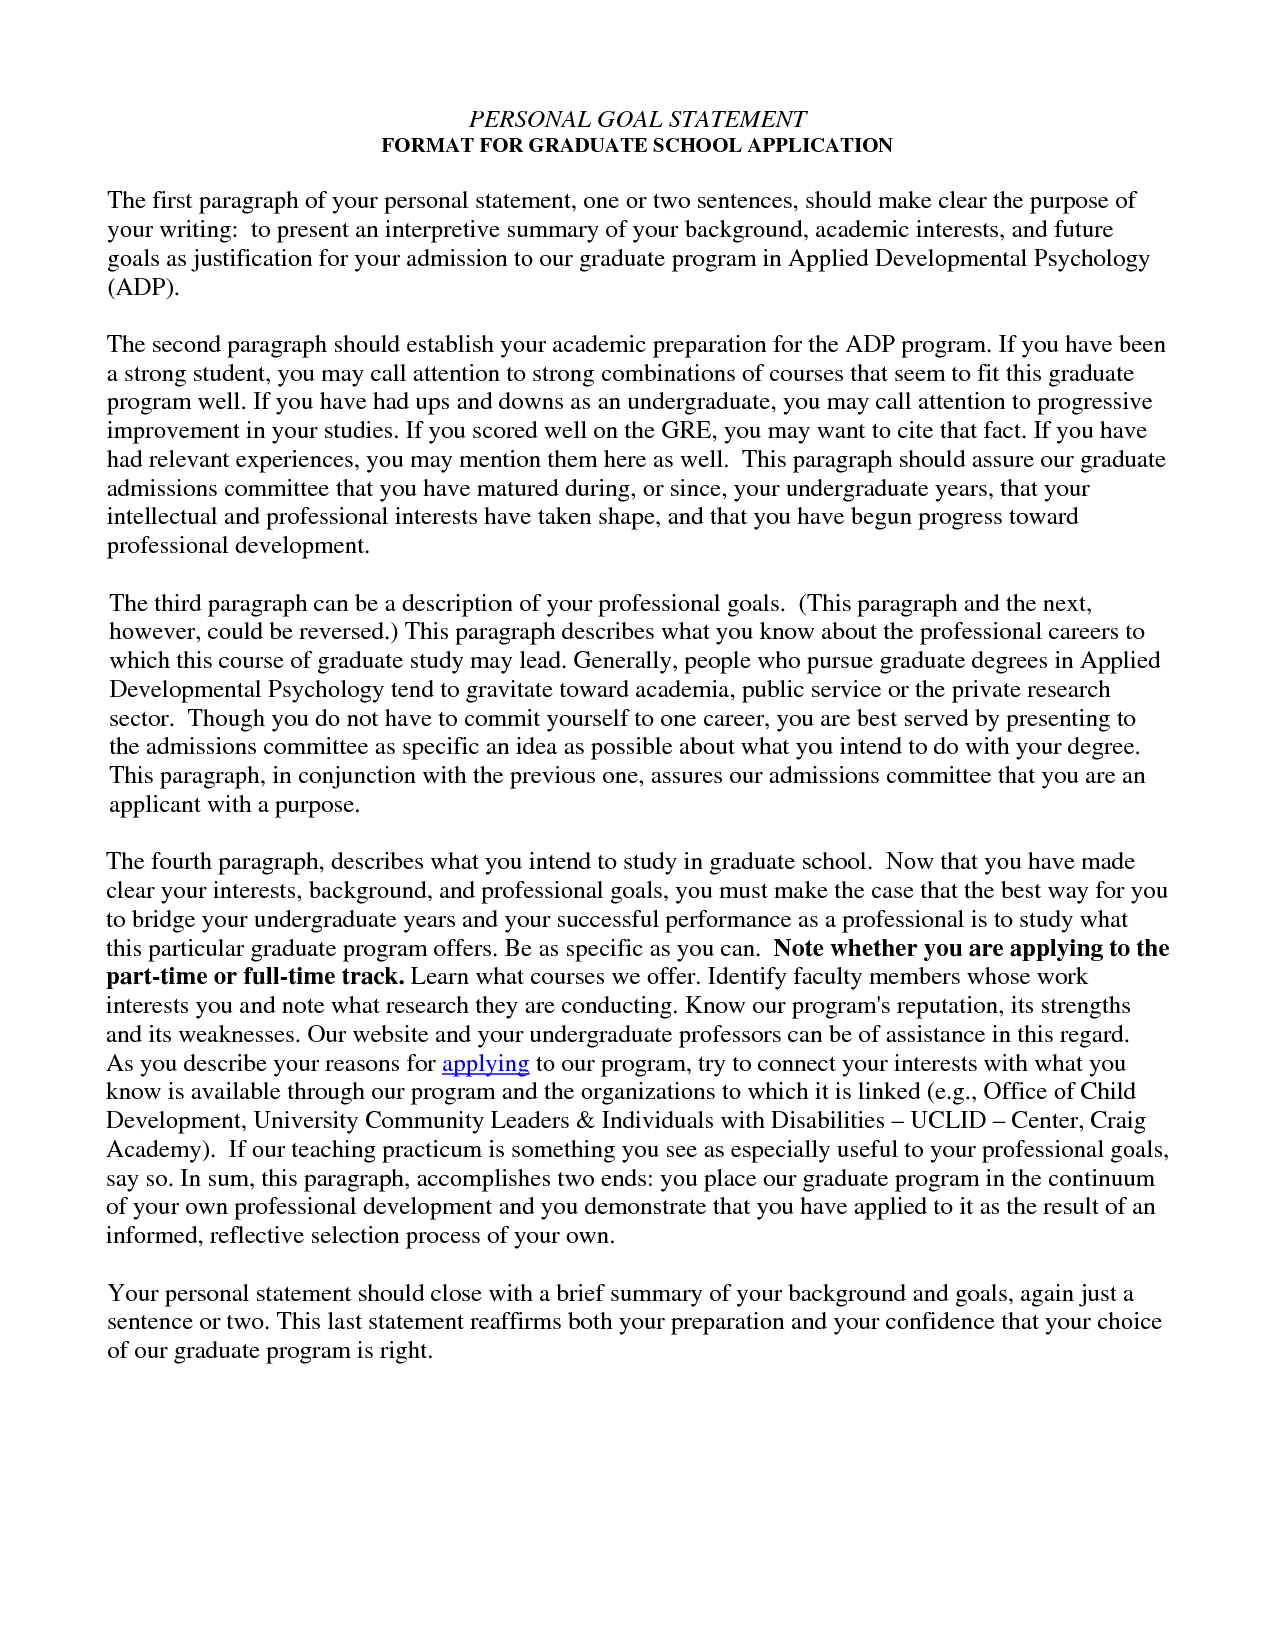 law school application essay personal essay graduate school the